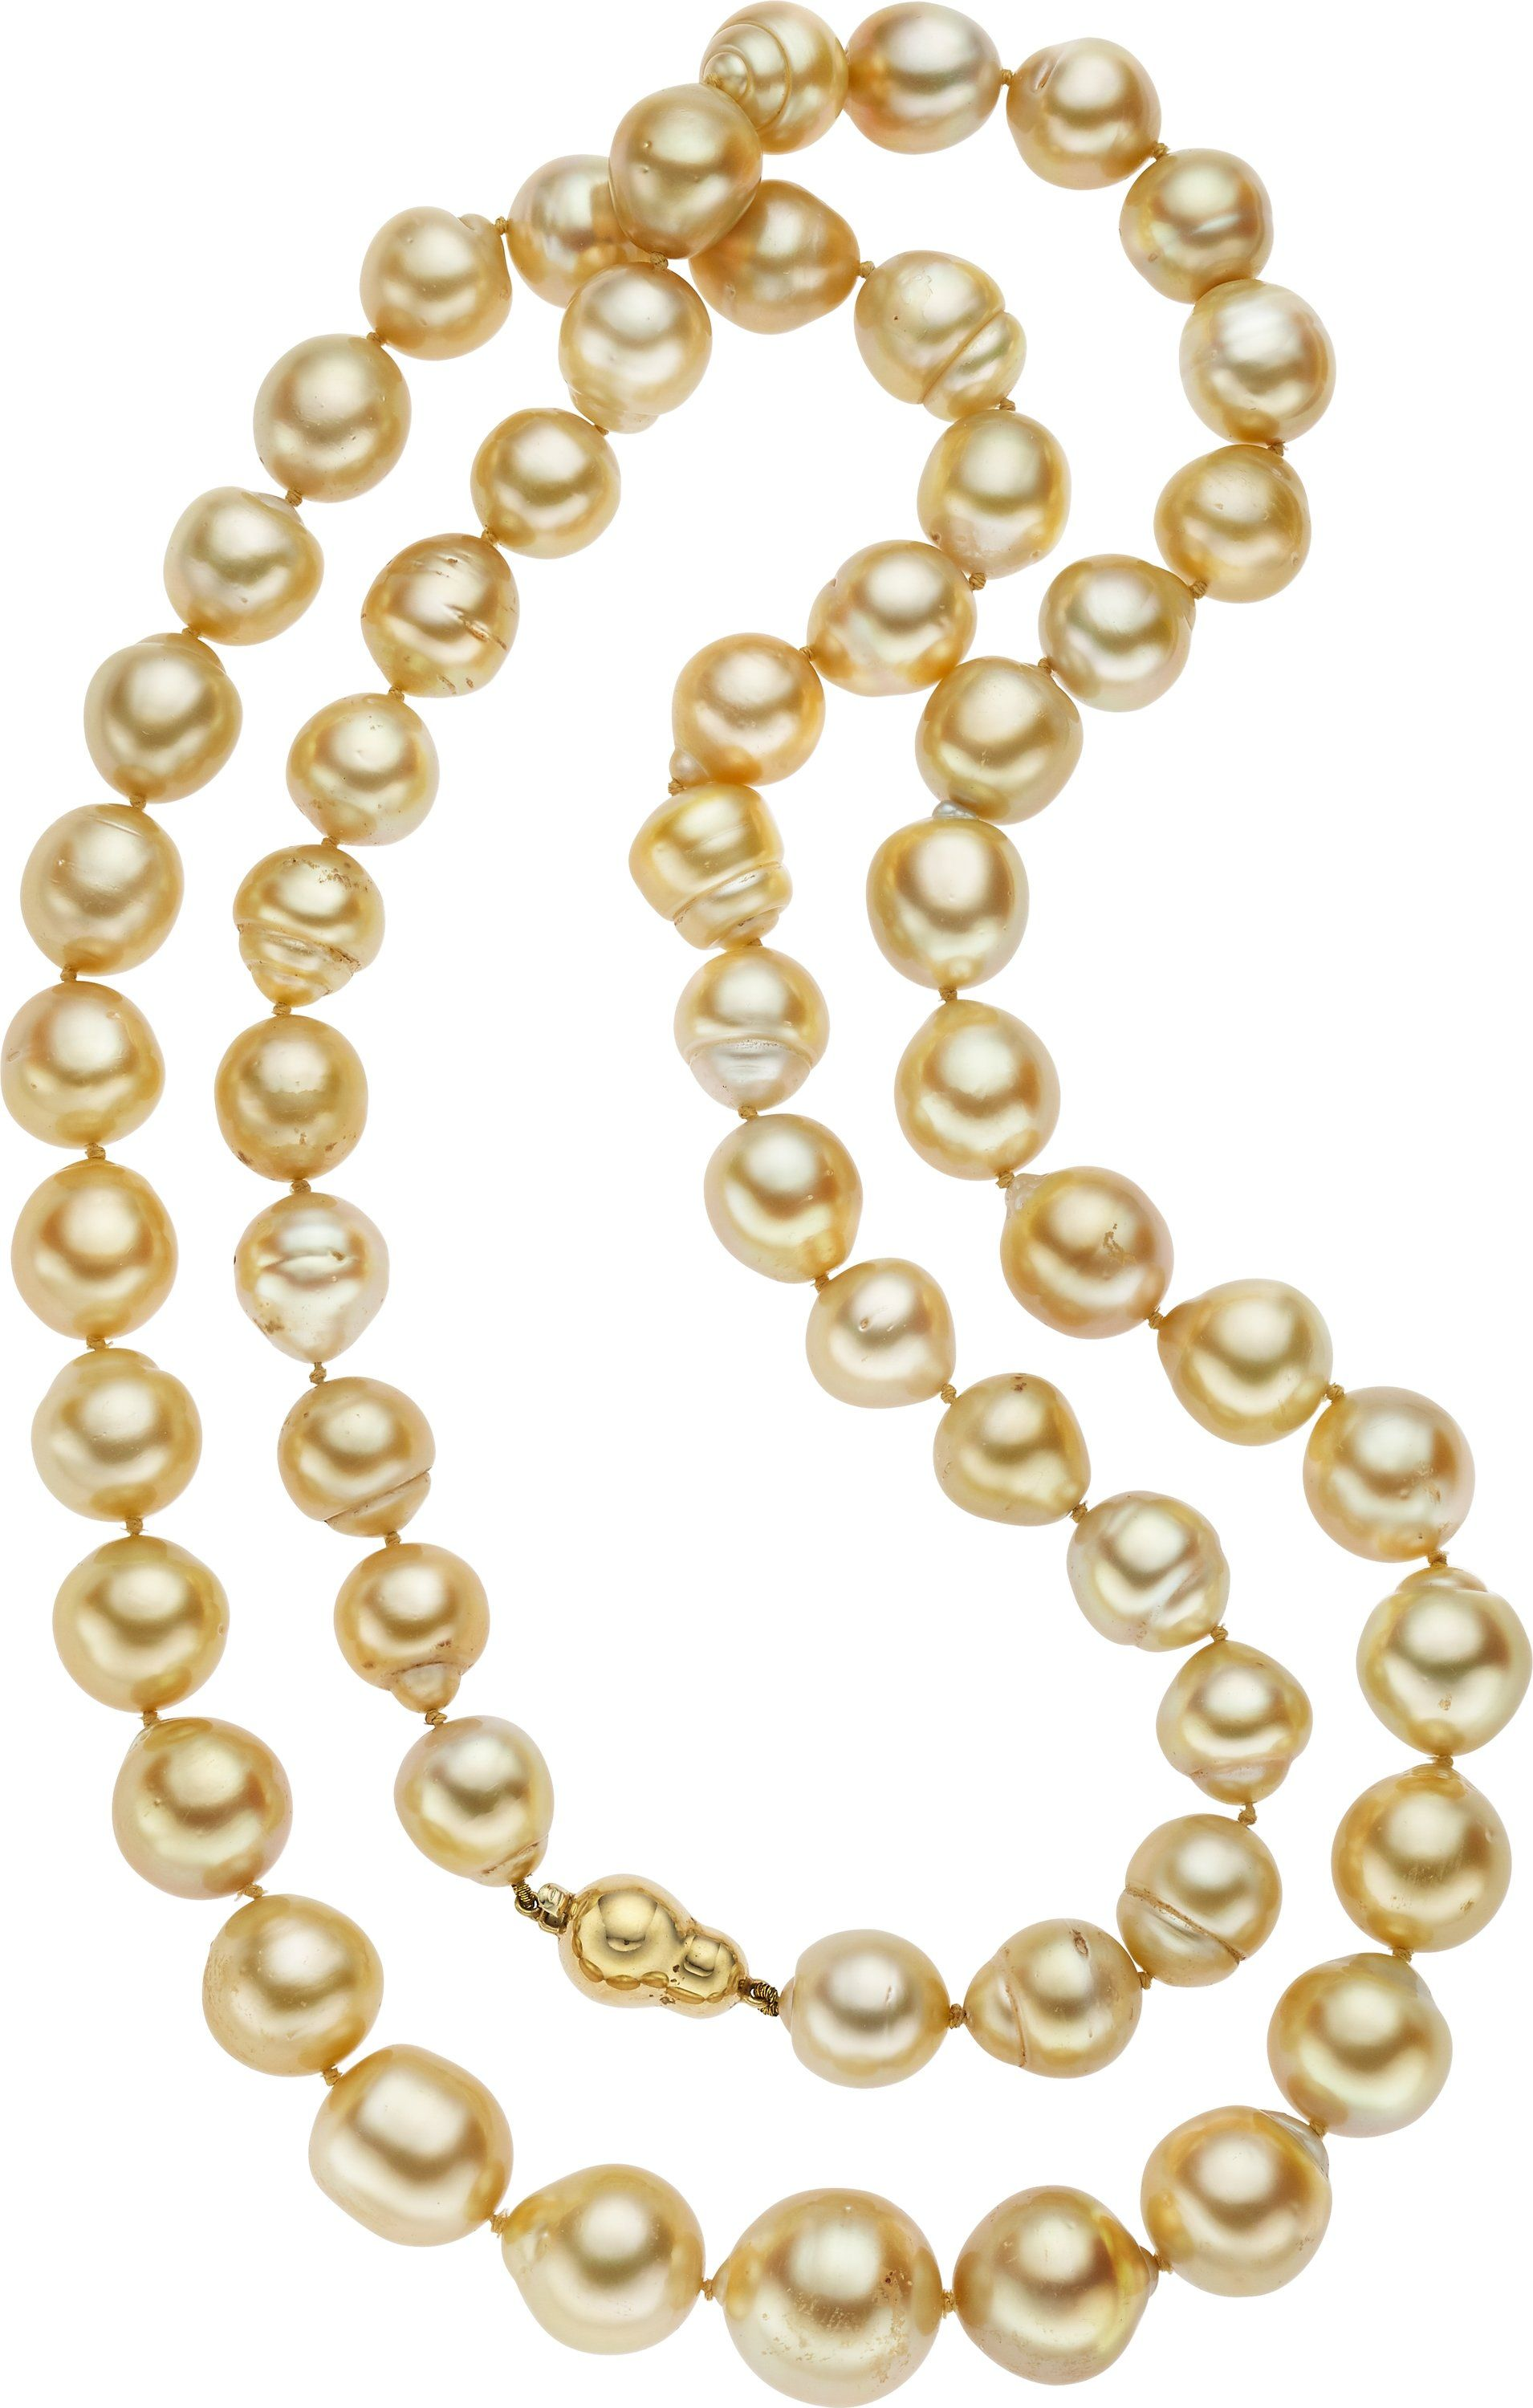 pearl cultured clip white in on earrings pearls gold